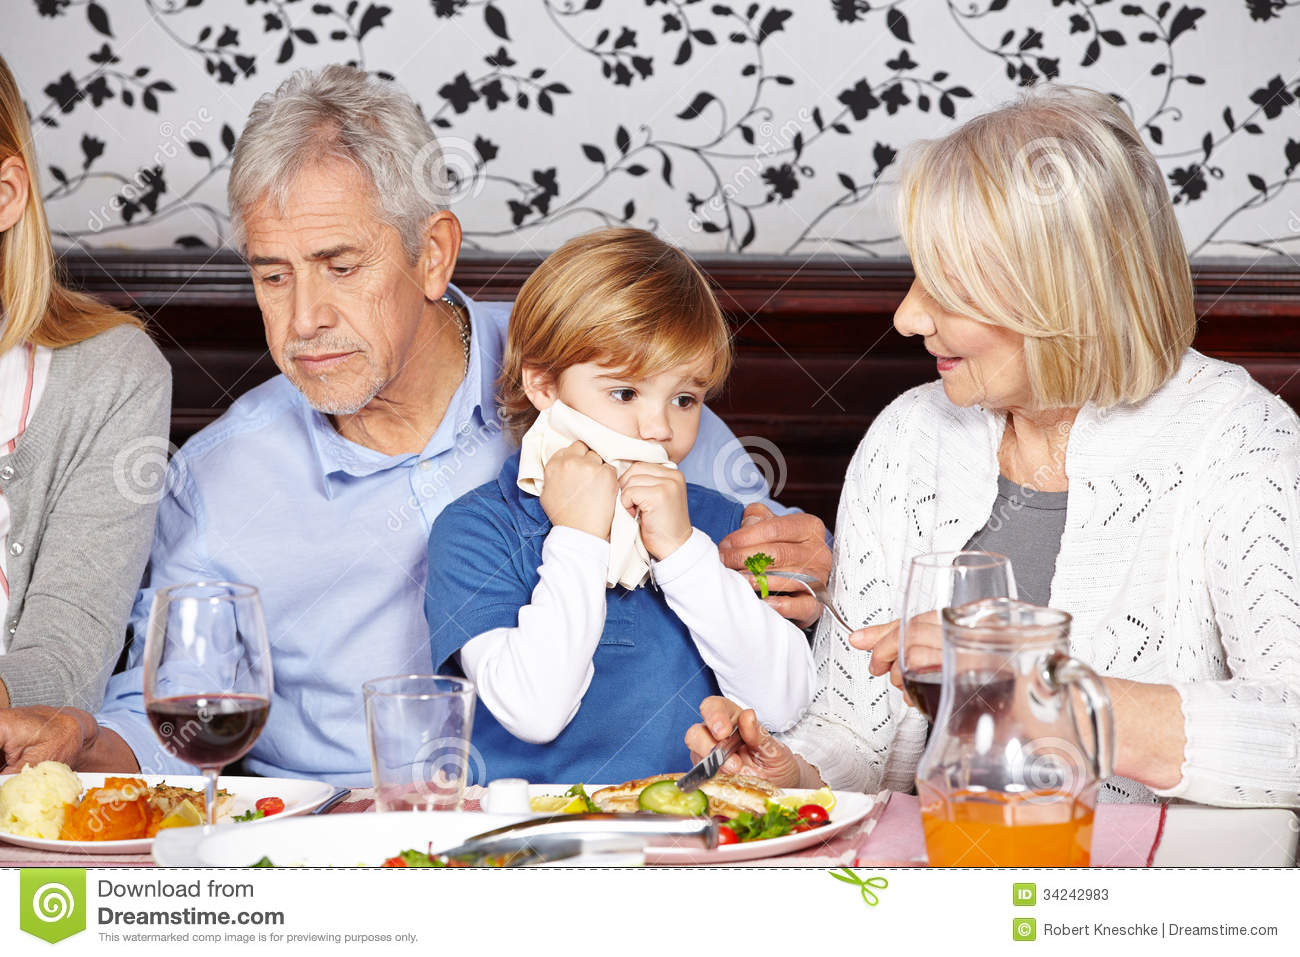 Child Cleaning Mouth With Napkin Stock Photos.